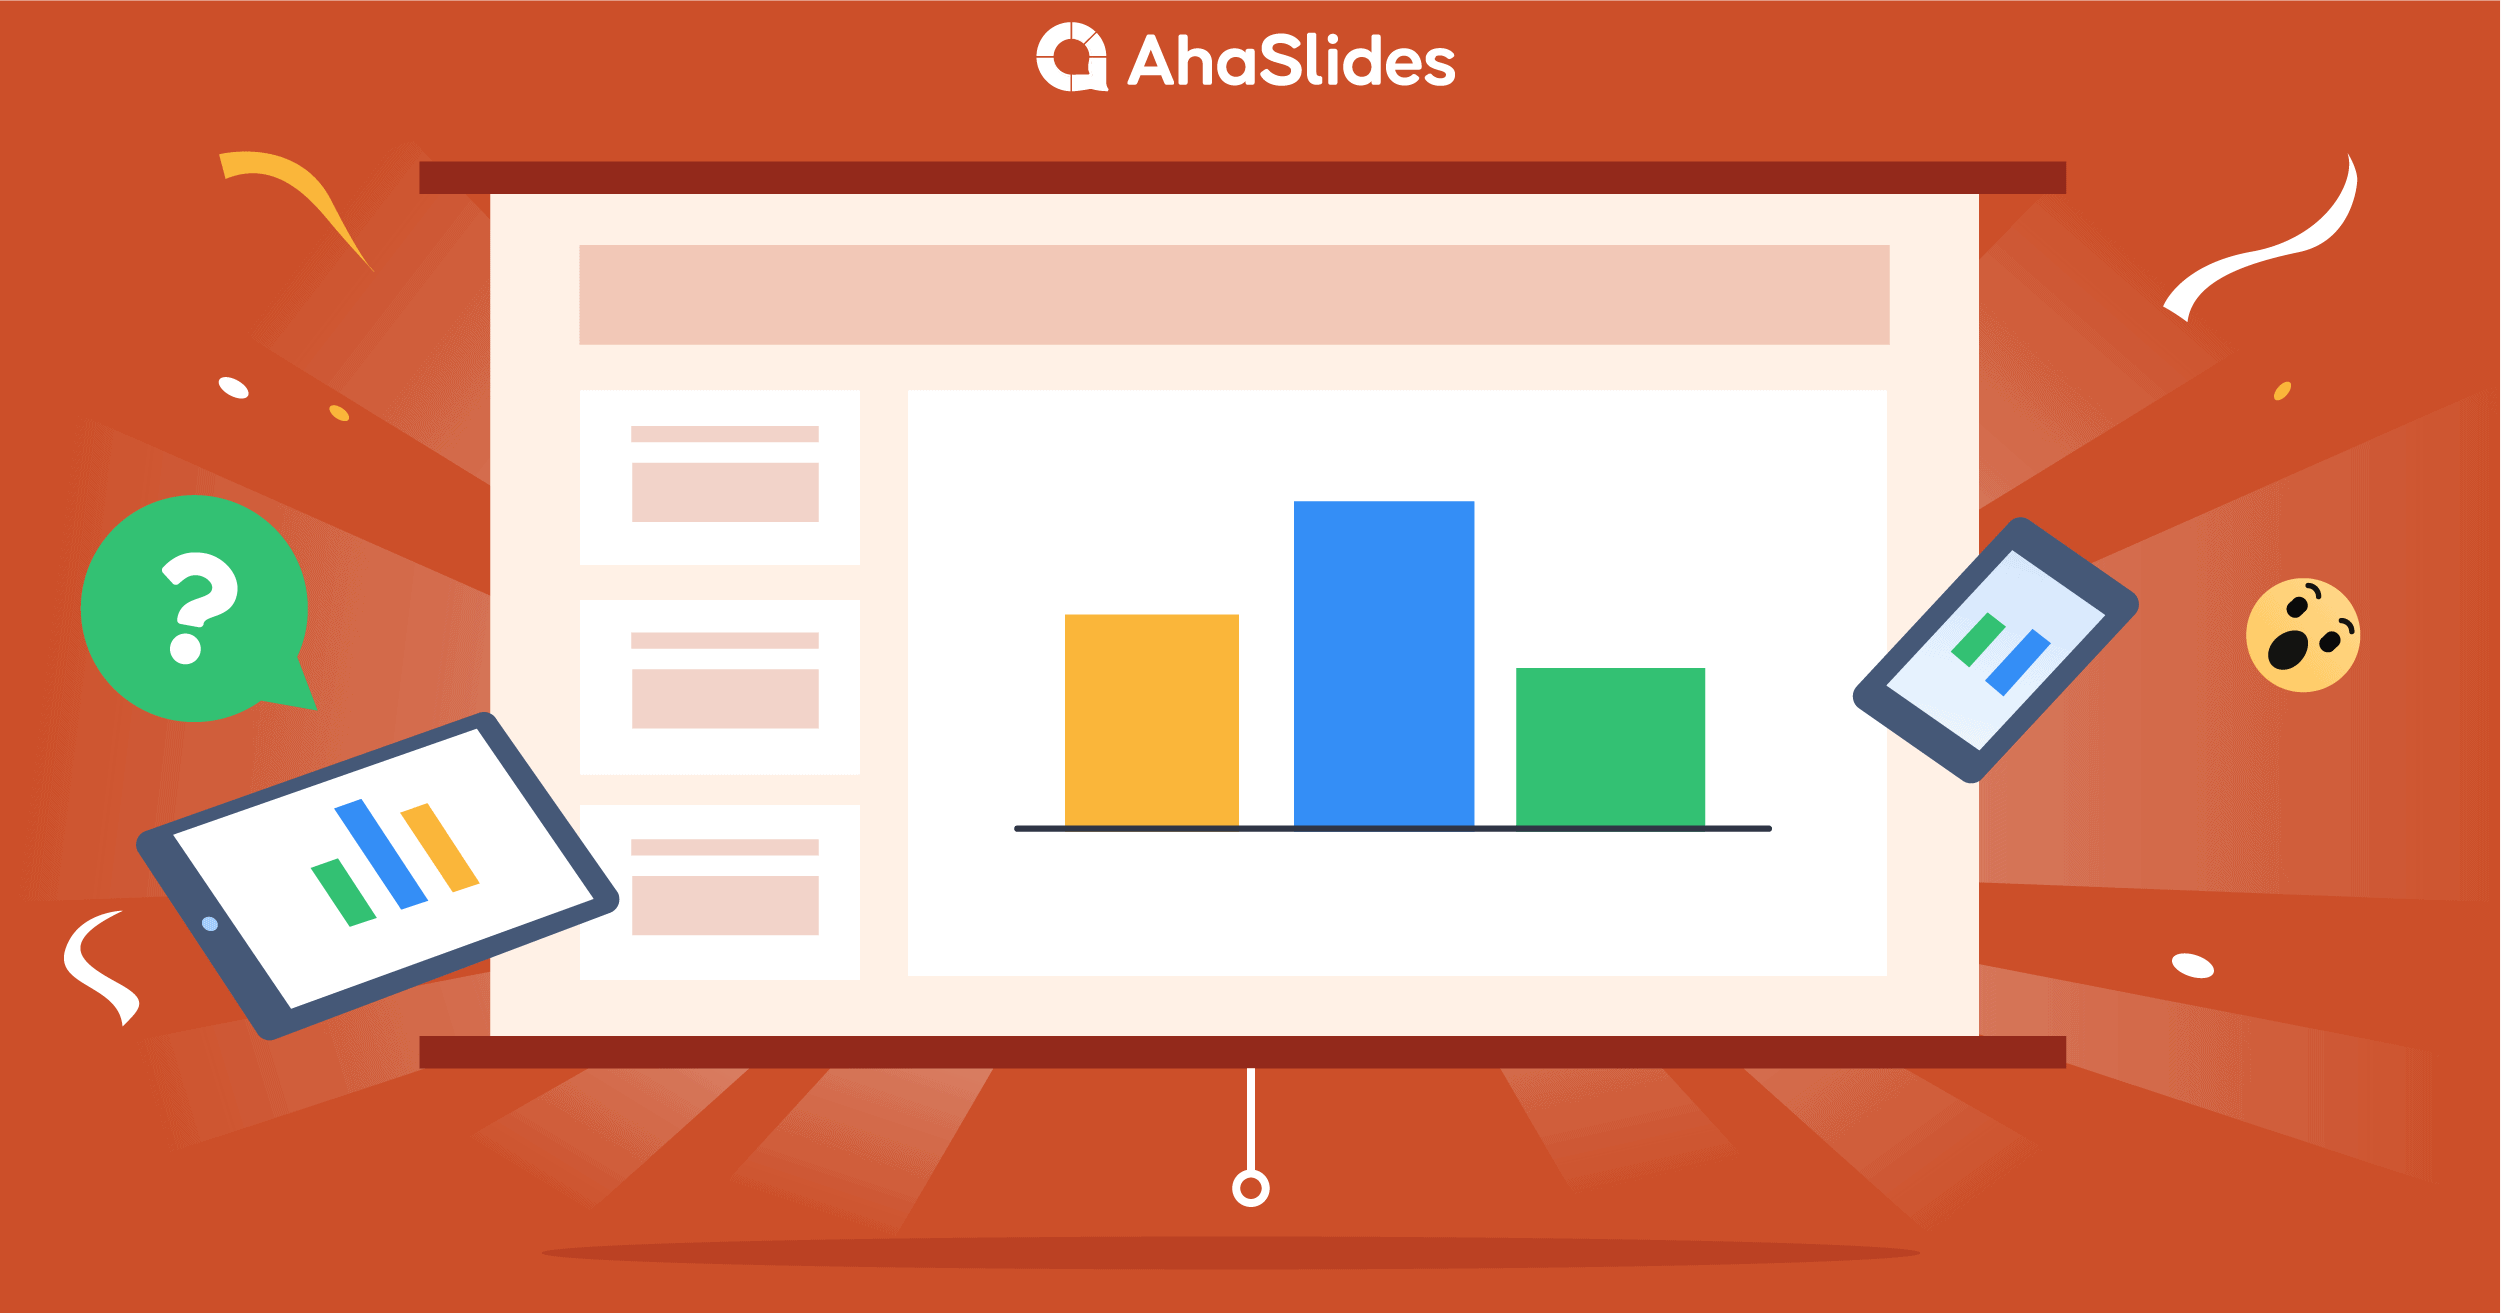 How to Make an Interactive PowerPoint with AhaSlides